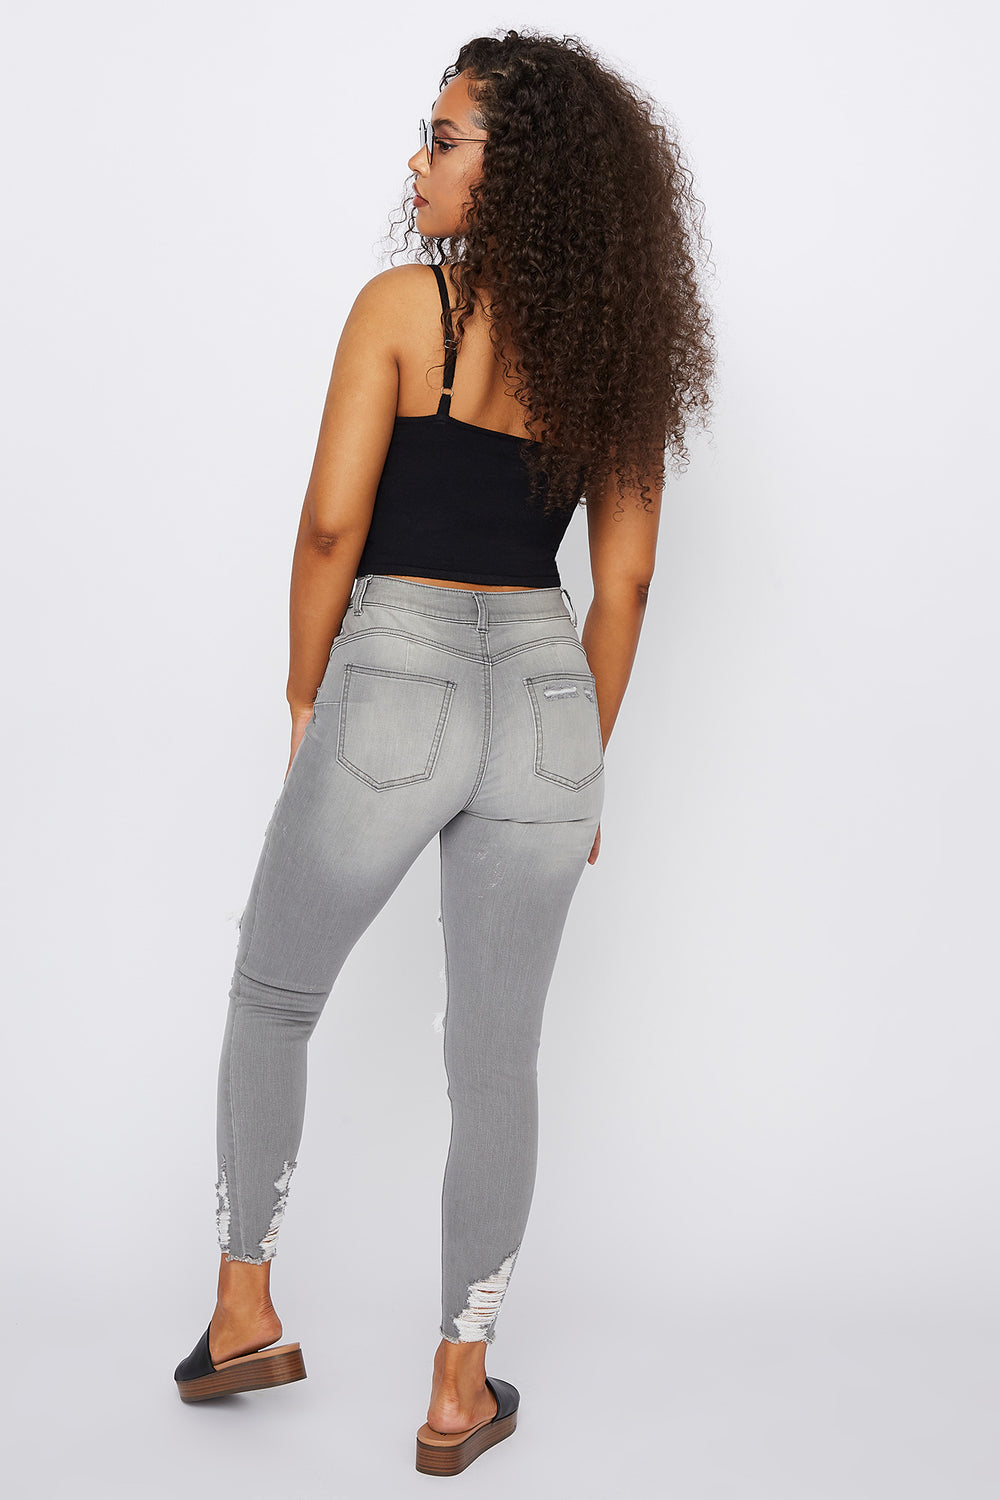 Refuge Rio Mid-Rise Push Up Grey Distressed Skinny Jean Heather Grey